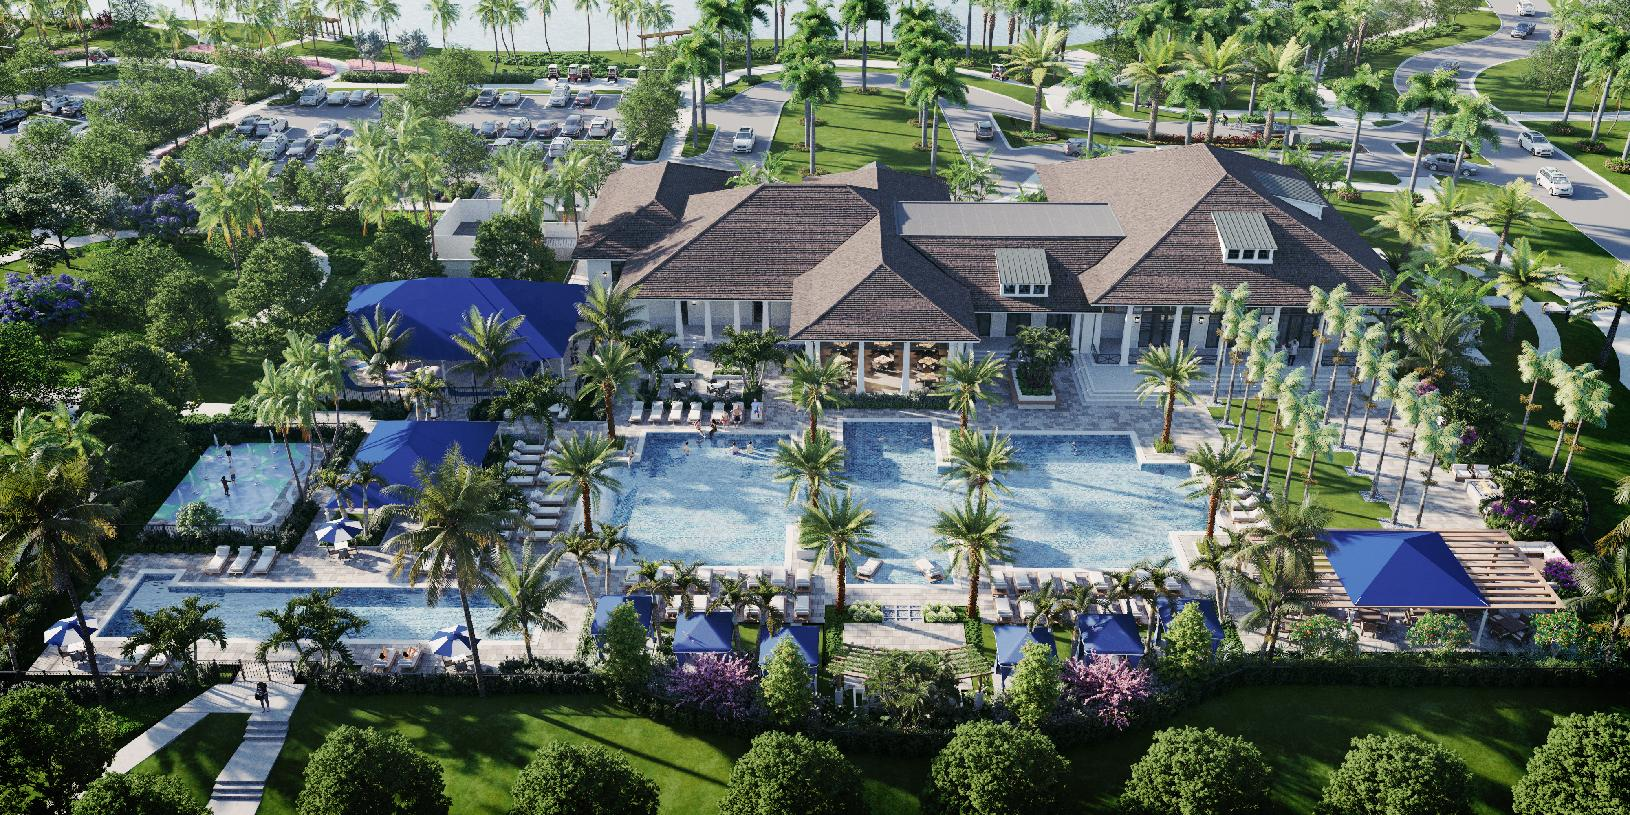 Residents will enjoy Avenir's future resort-style amenities